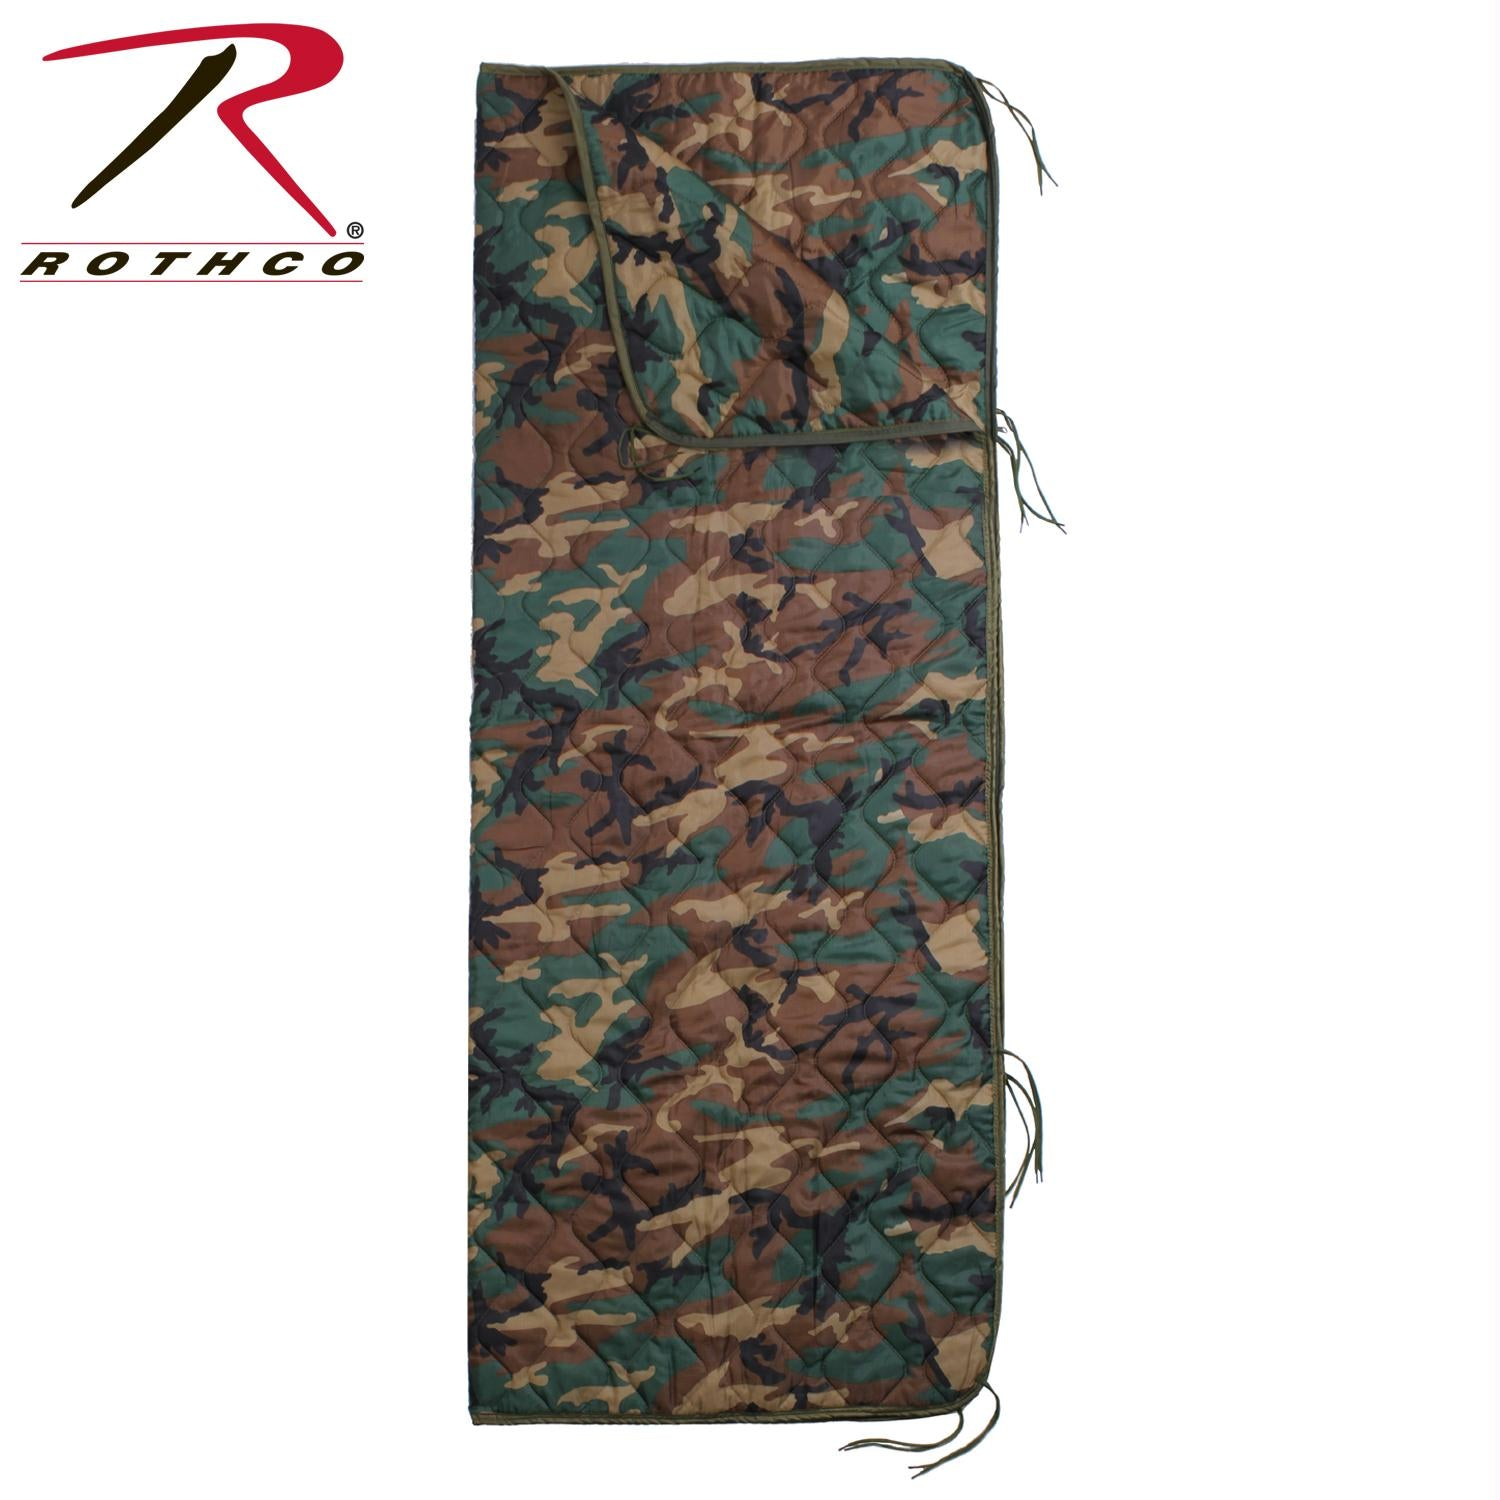 Rothco GI Type Rip-Stop Poncho Liner With Zipper - Woodland Camo